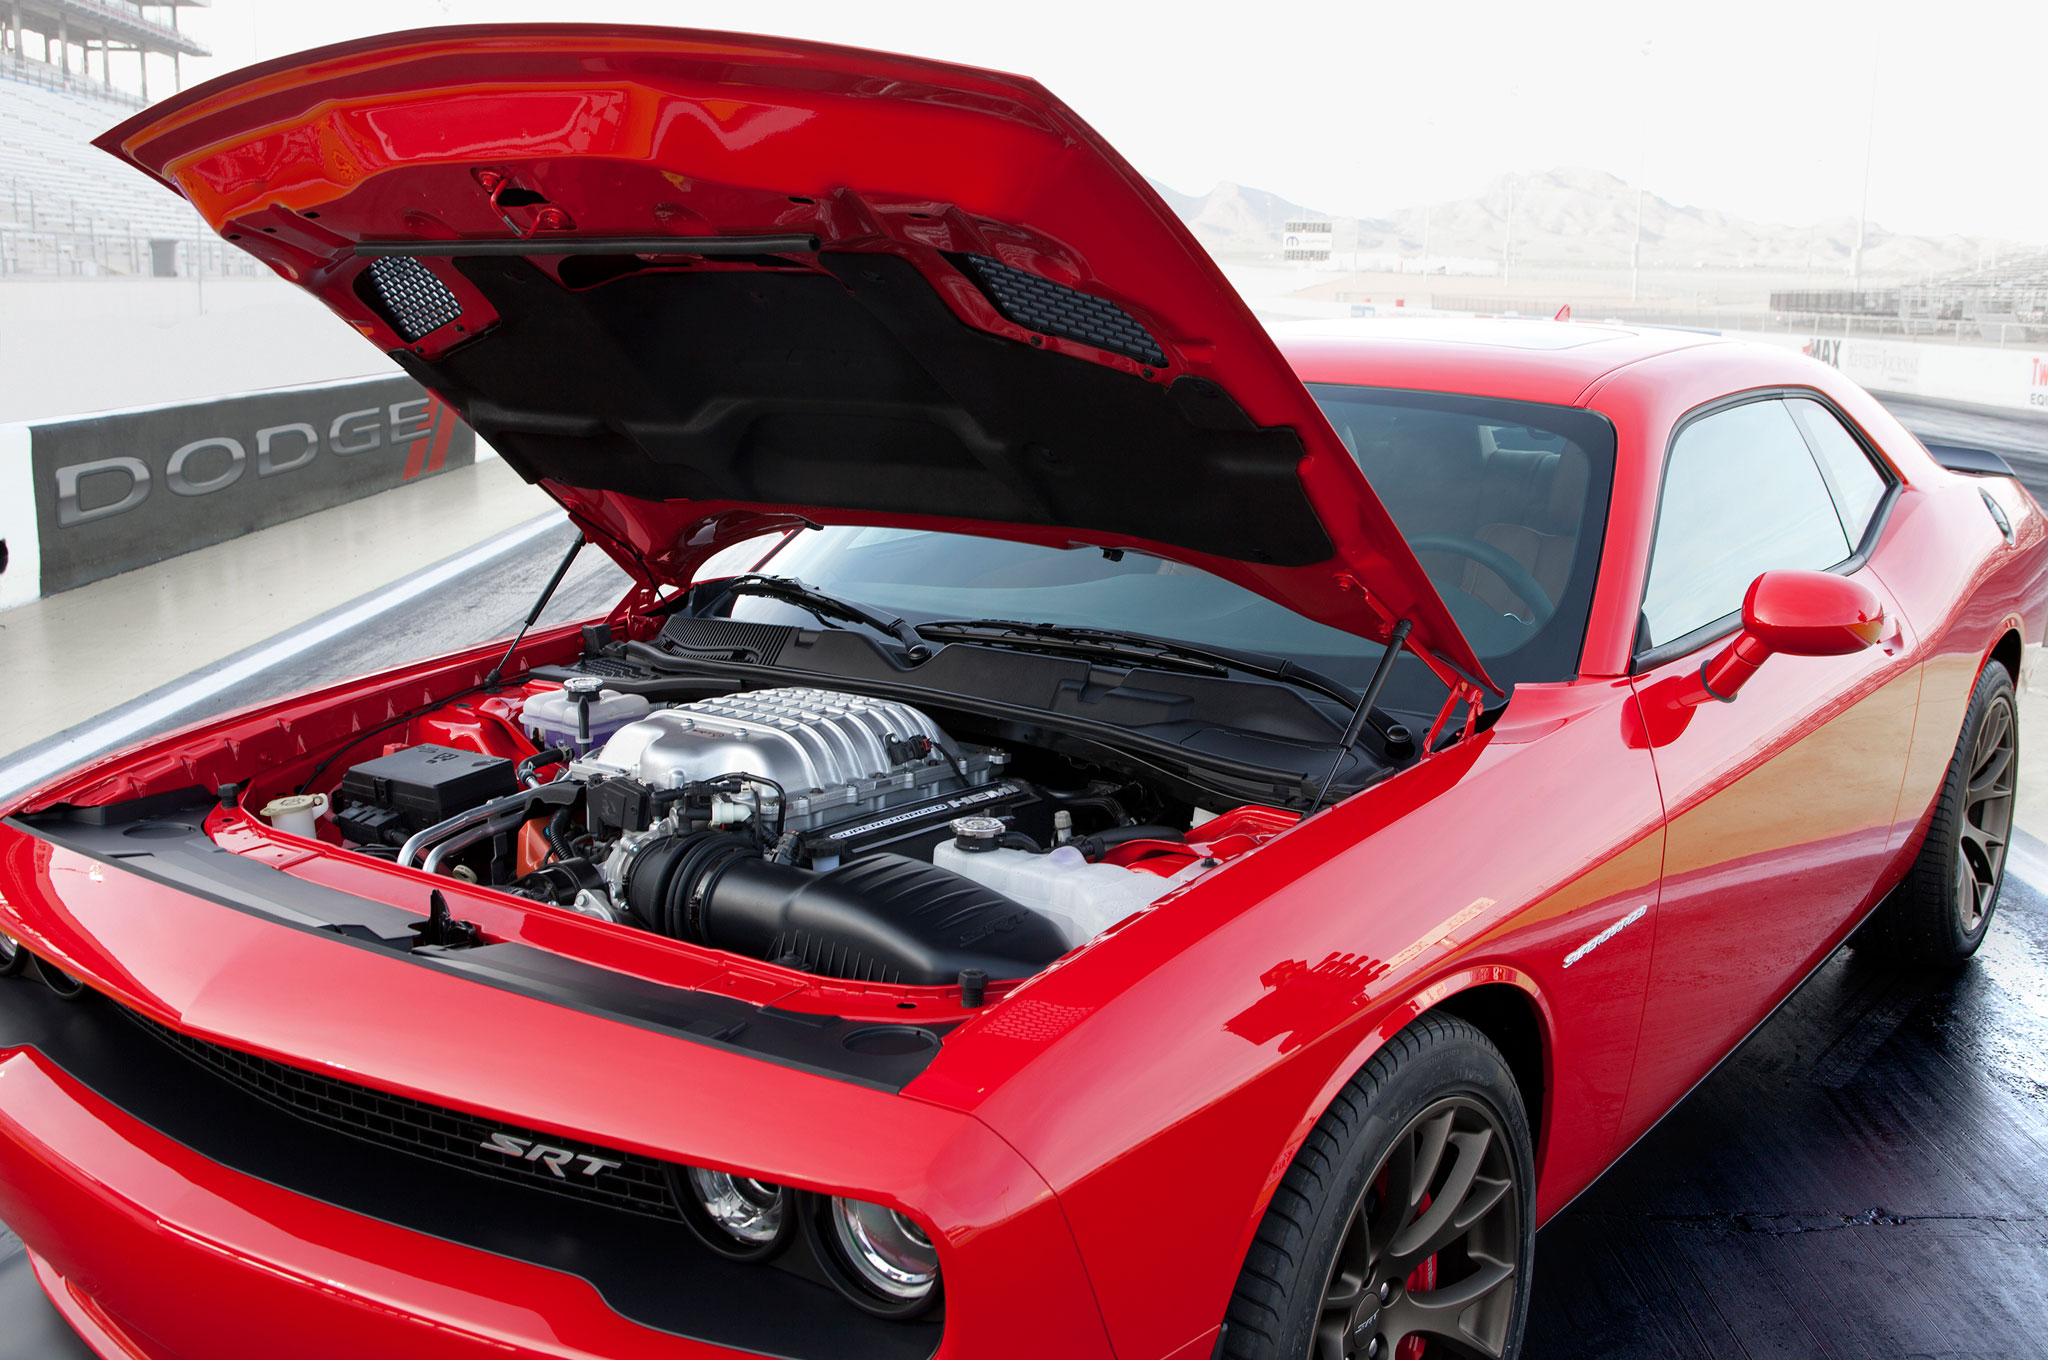 2015 Dodge Challenger Engine (Photo 32 of 39)